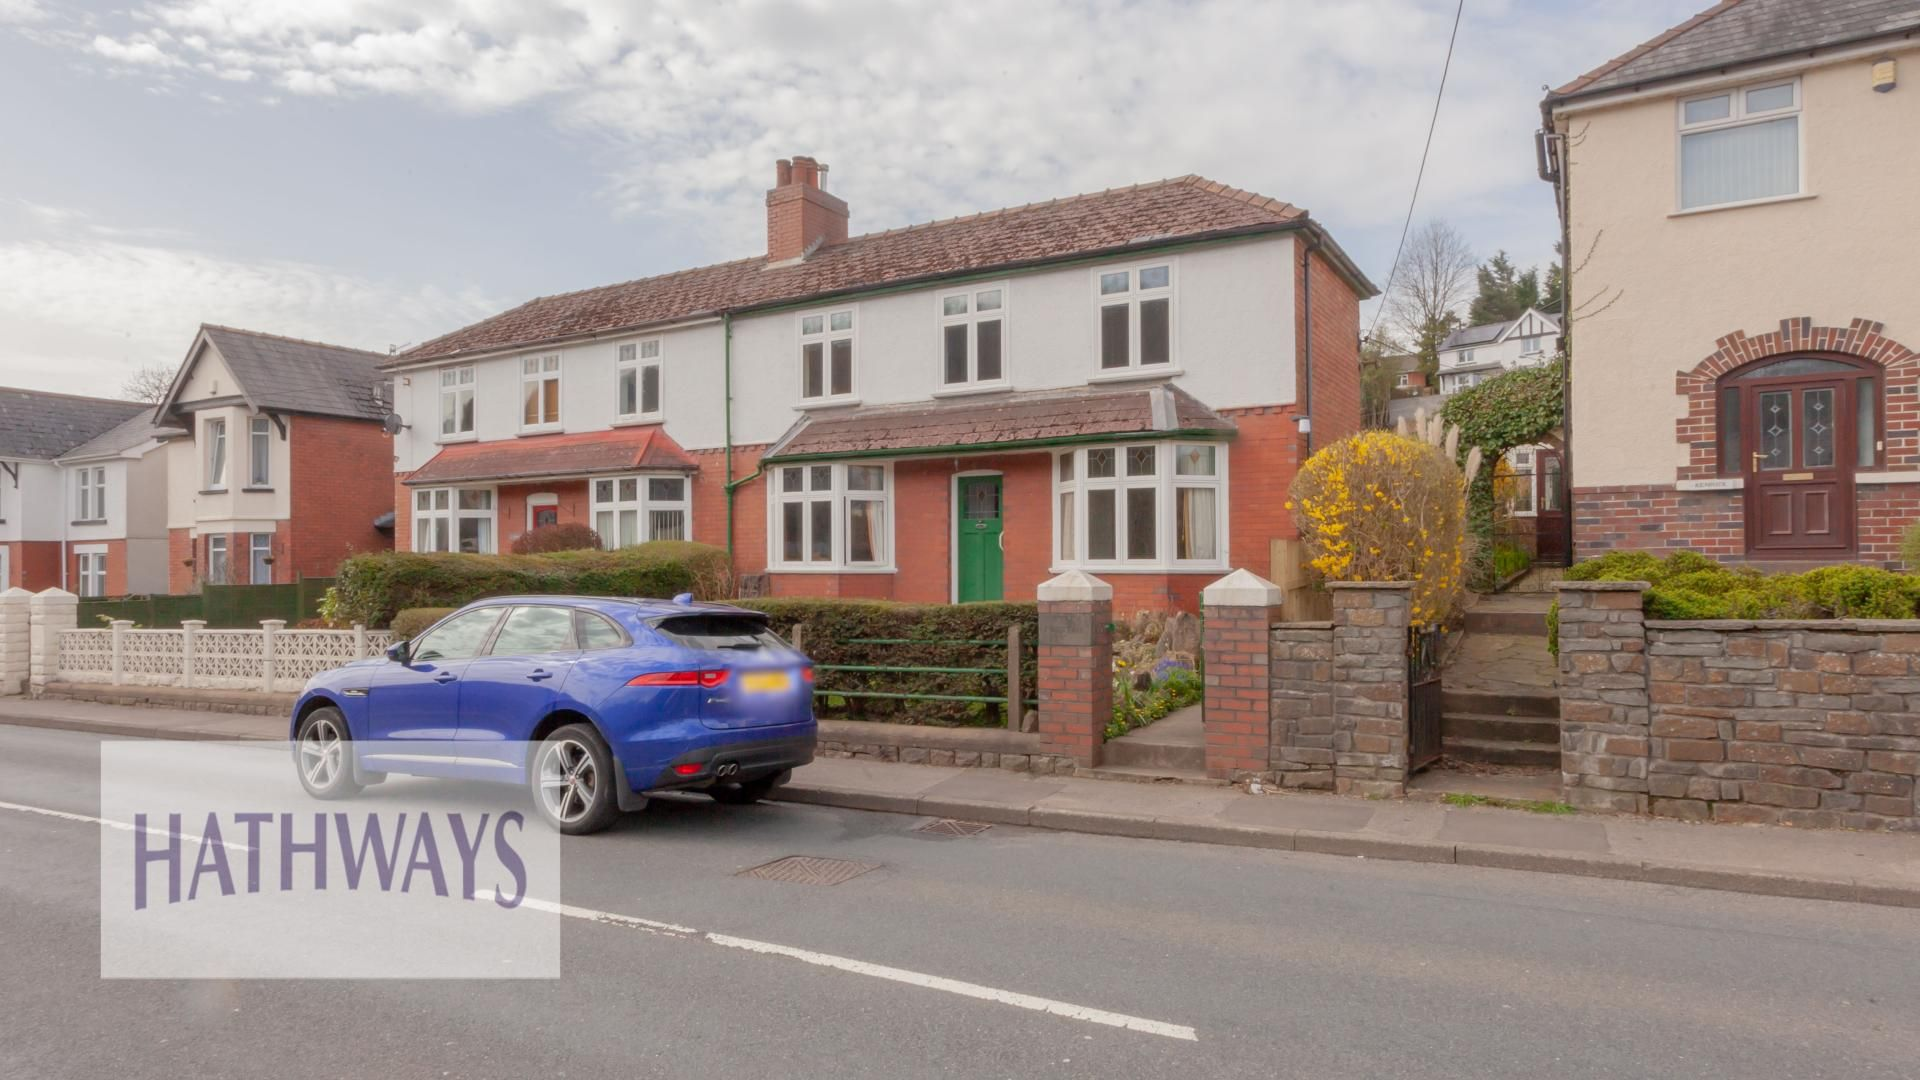 3 bed house for sale in Cwmavon Road, NP4